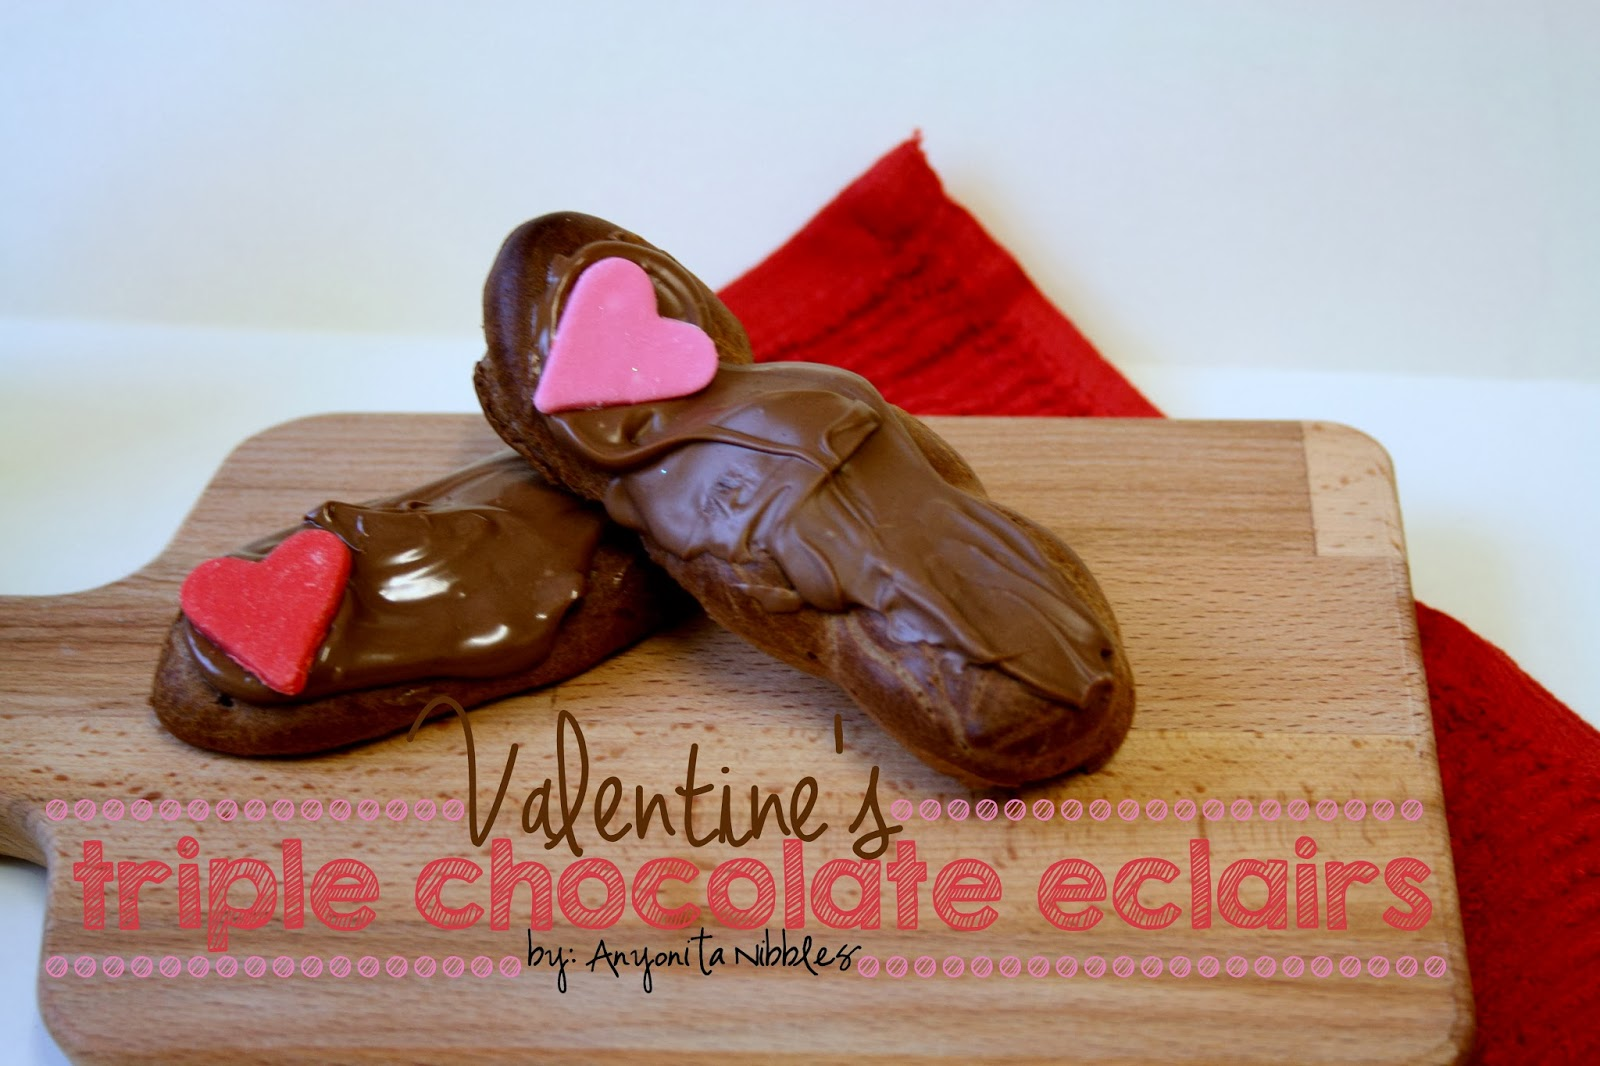 Valentine's Triple Chocolate Eclairs from Anyonita-nibbles.co.uk